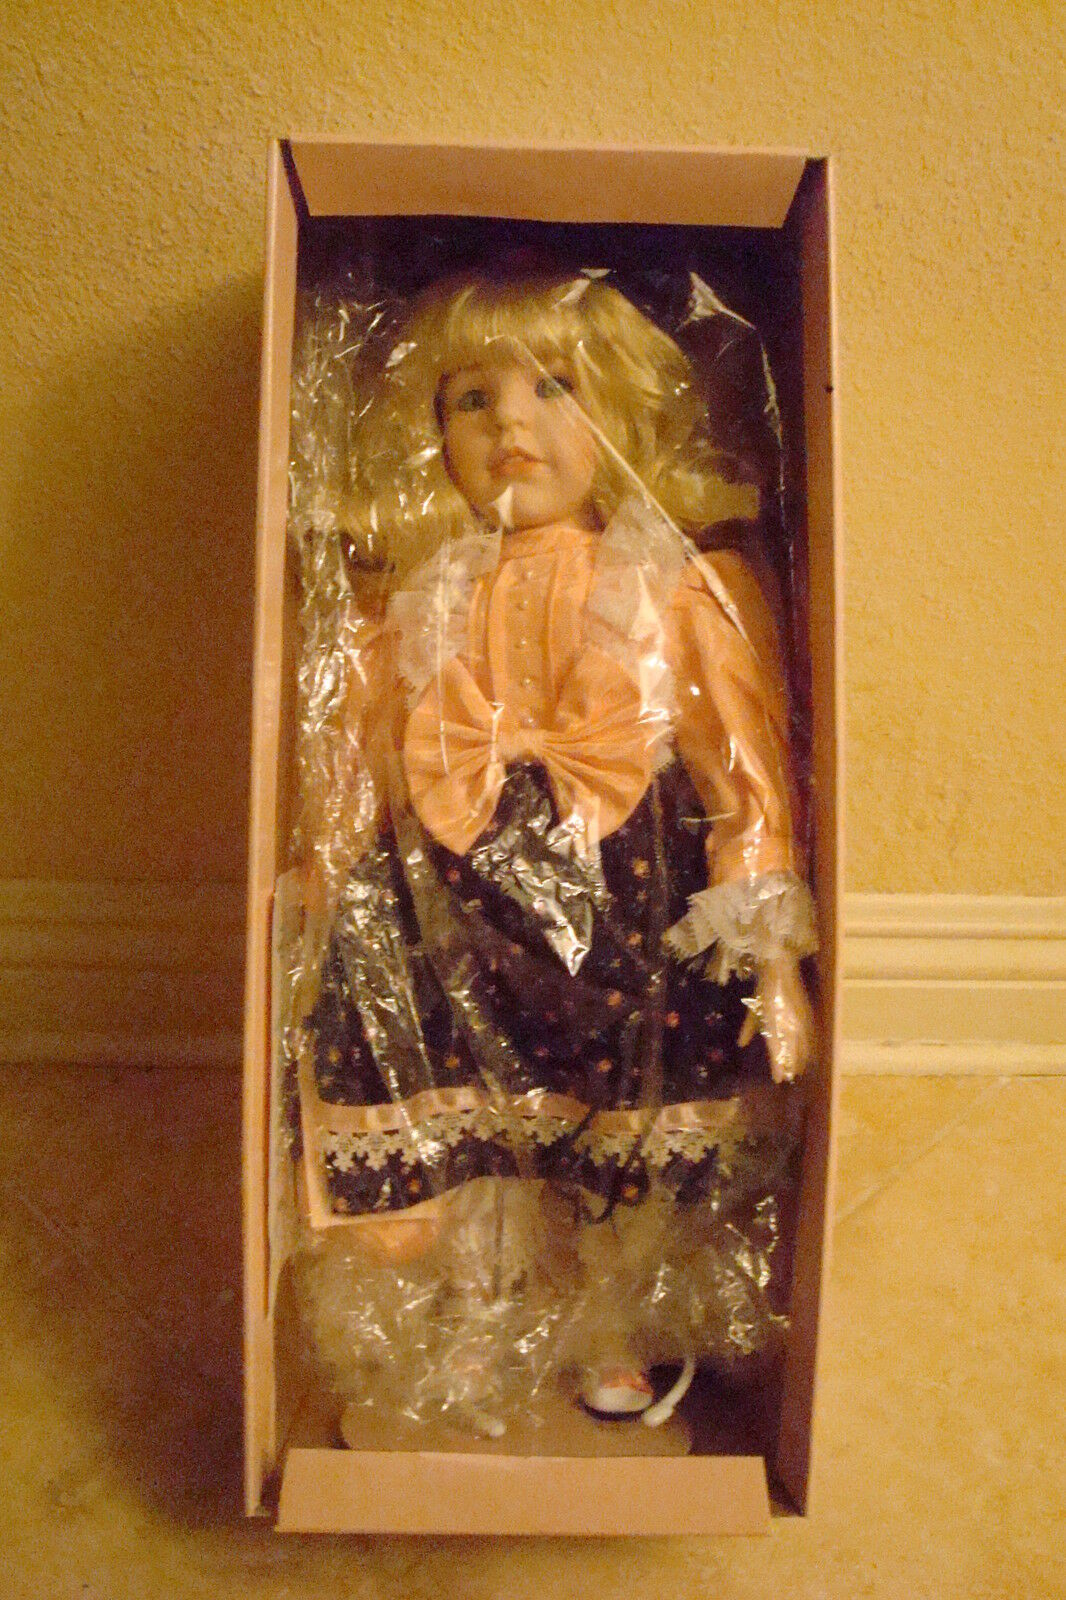 Carol Anne Dolls LE  PUMPKIN    25 1000 by Bette Ball Exclusively for GOEBEL